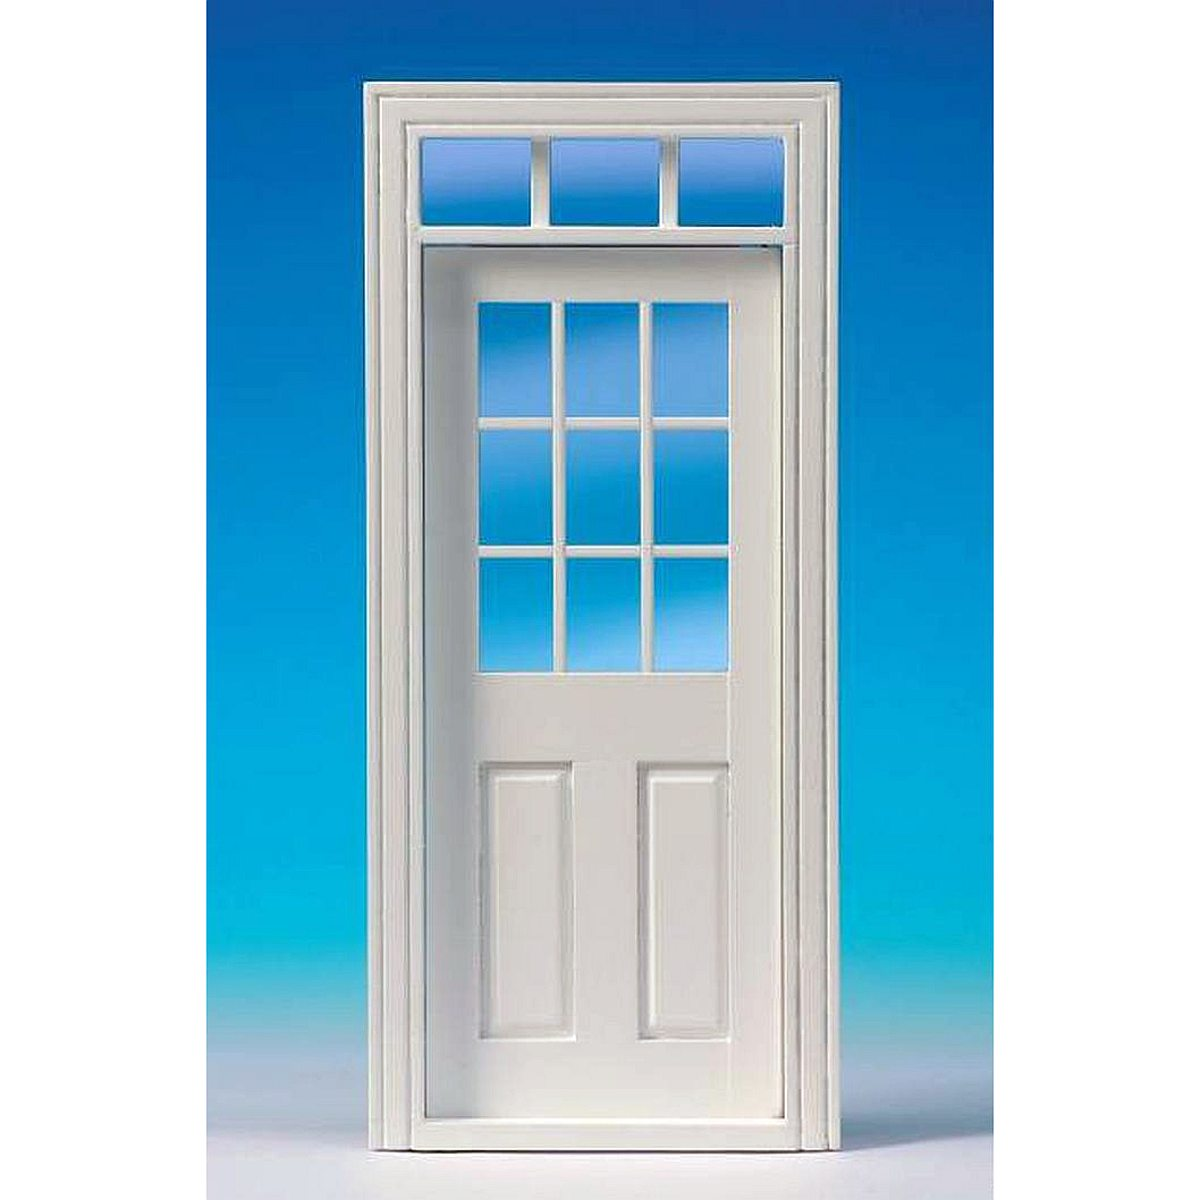 Interior door with glass pane white 60181 interior door with glass pane white planetlyrics Images